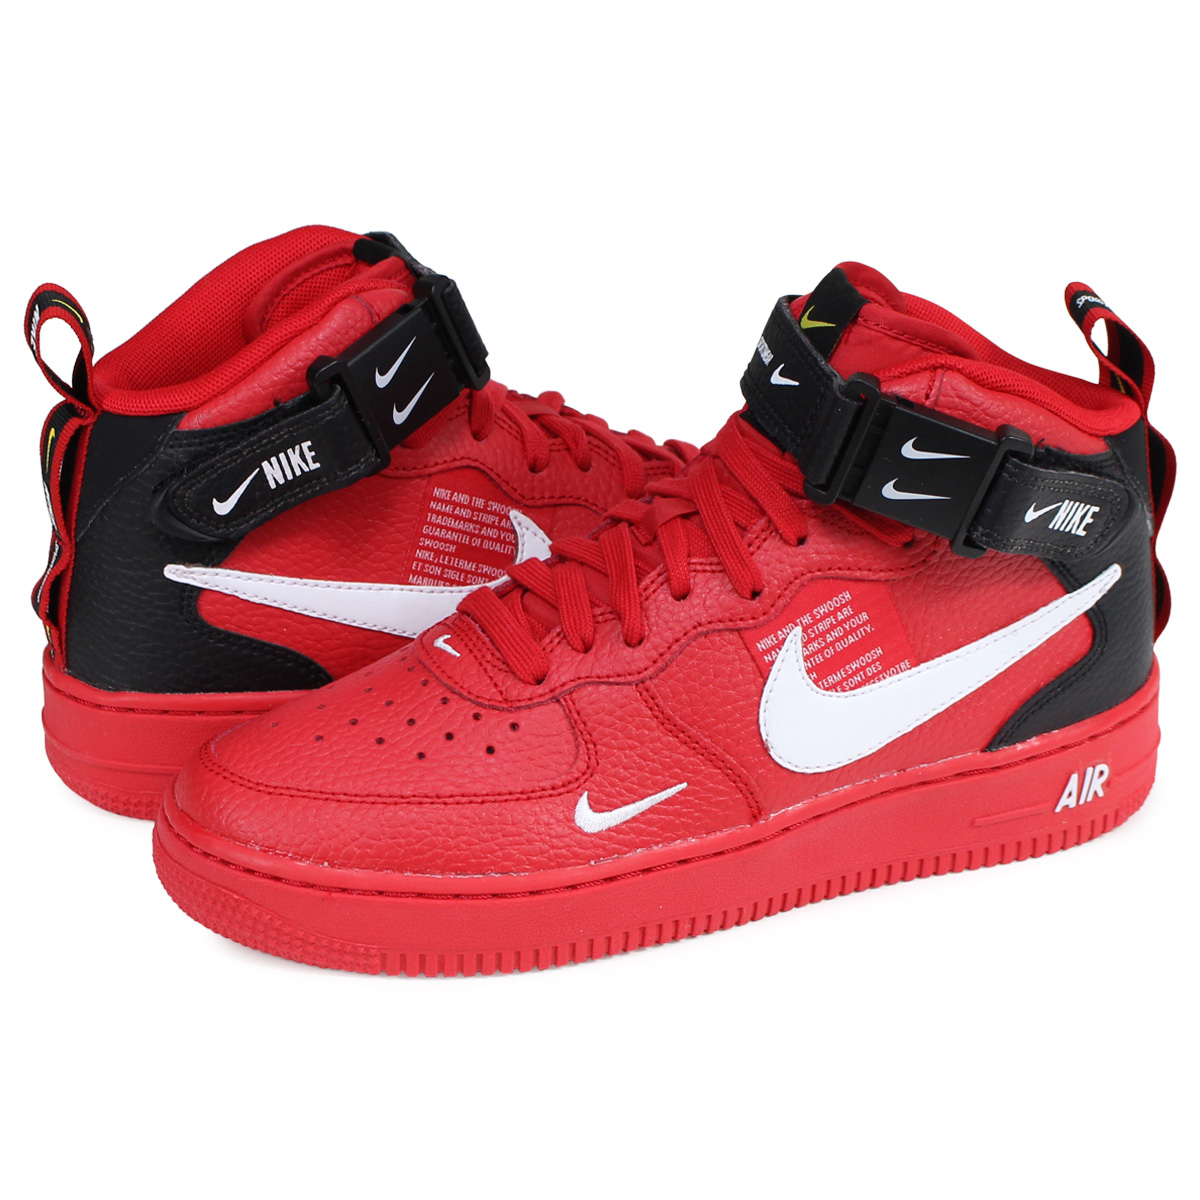 d66dffb50f Nike NIKE air force 1 sneakers Lady's AIR FORCE 1 MID LV8 GS red AV3803-